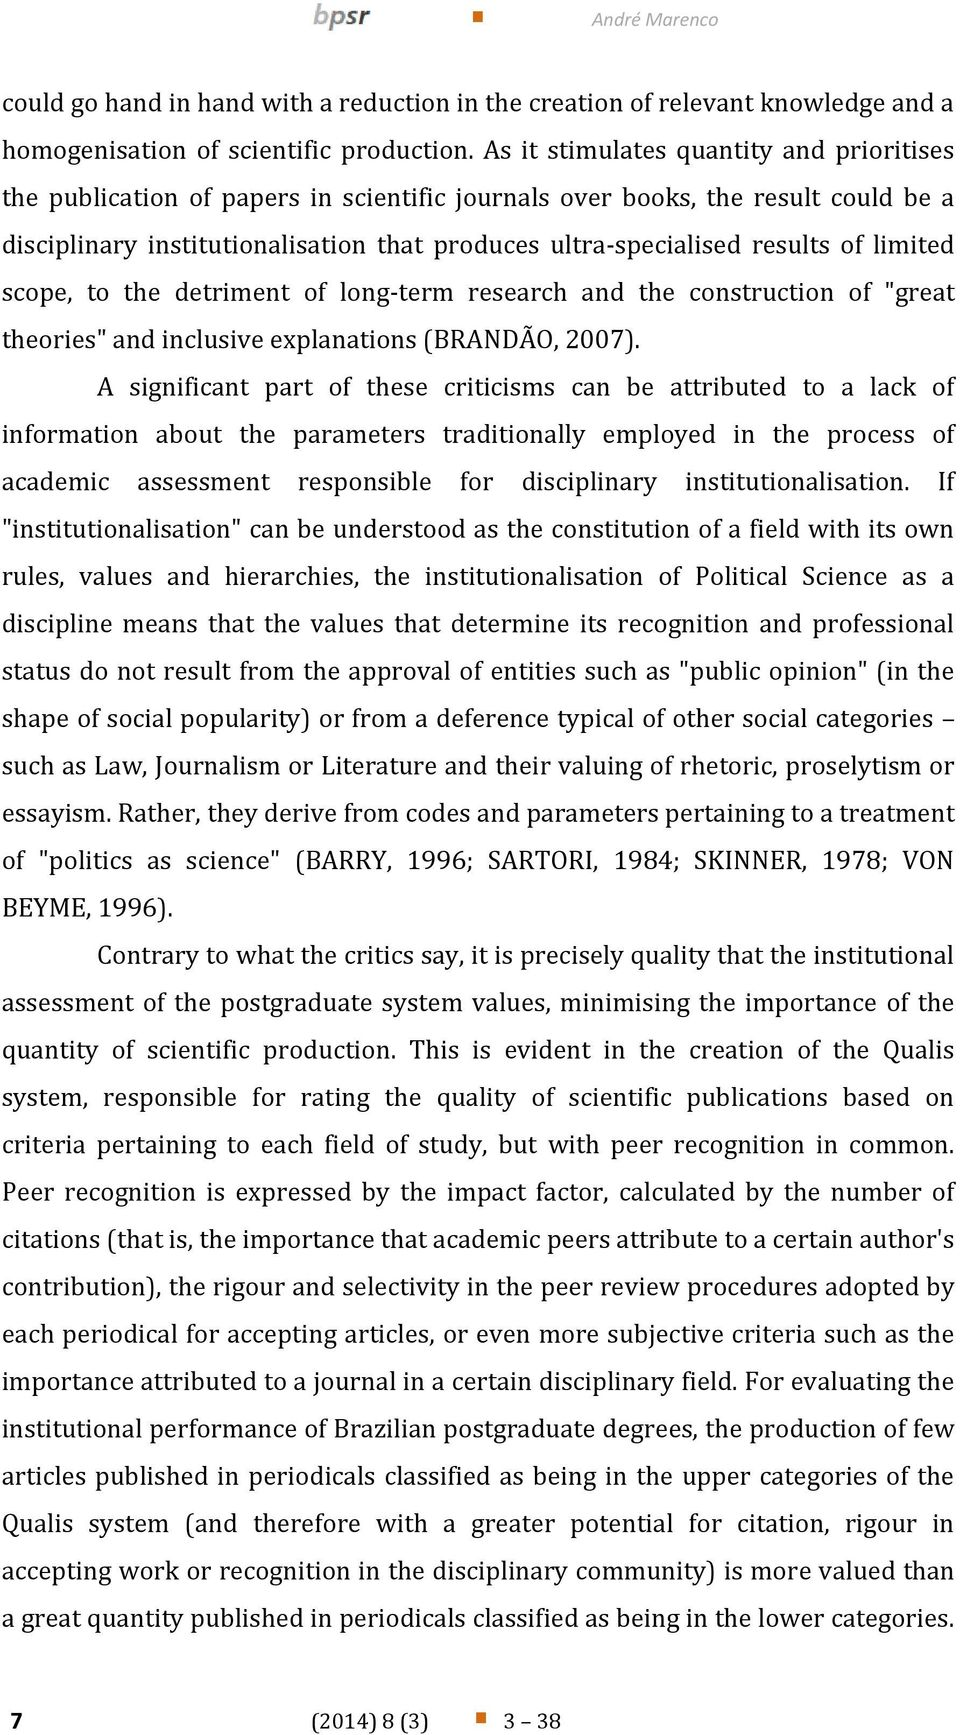 "of limited scope, to the detriment of long-term research and the construction of ""great theories"" and inclusive explanations (BRANDÃO, 2007)."